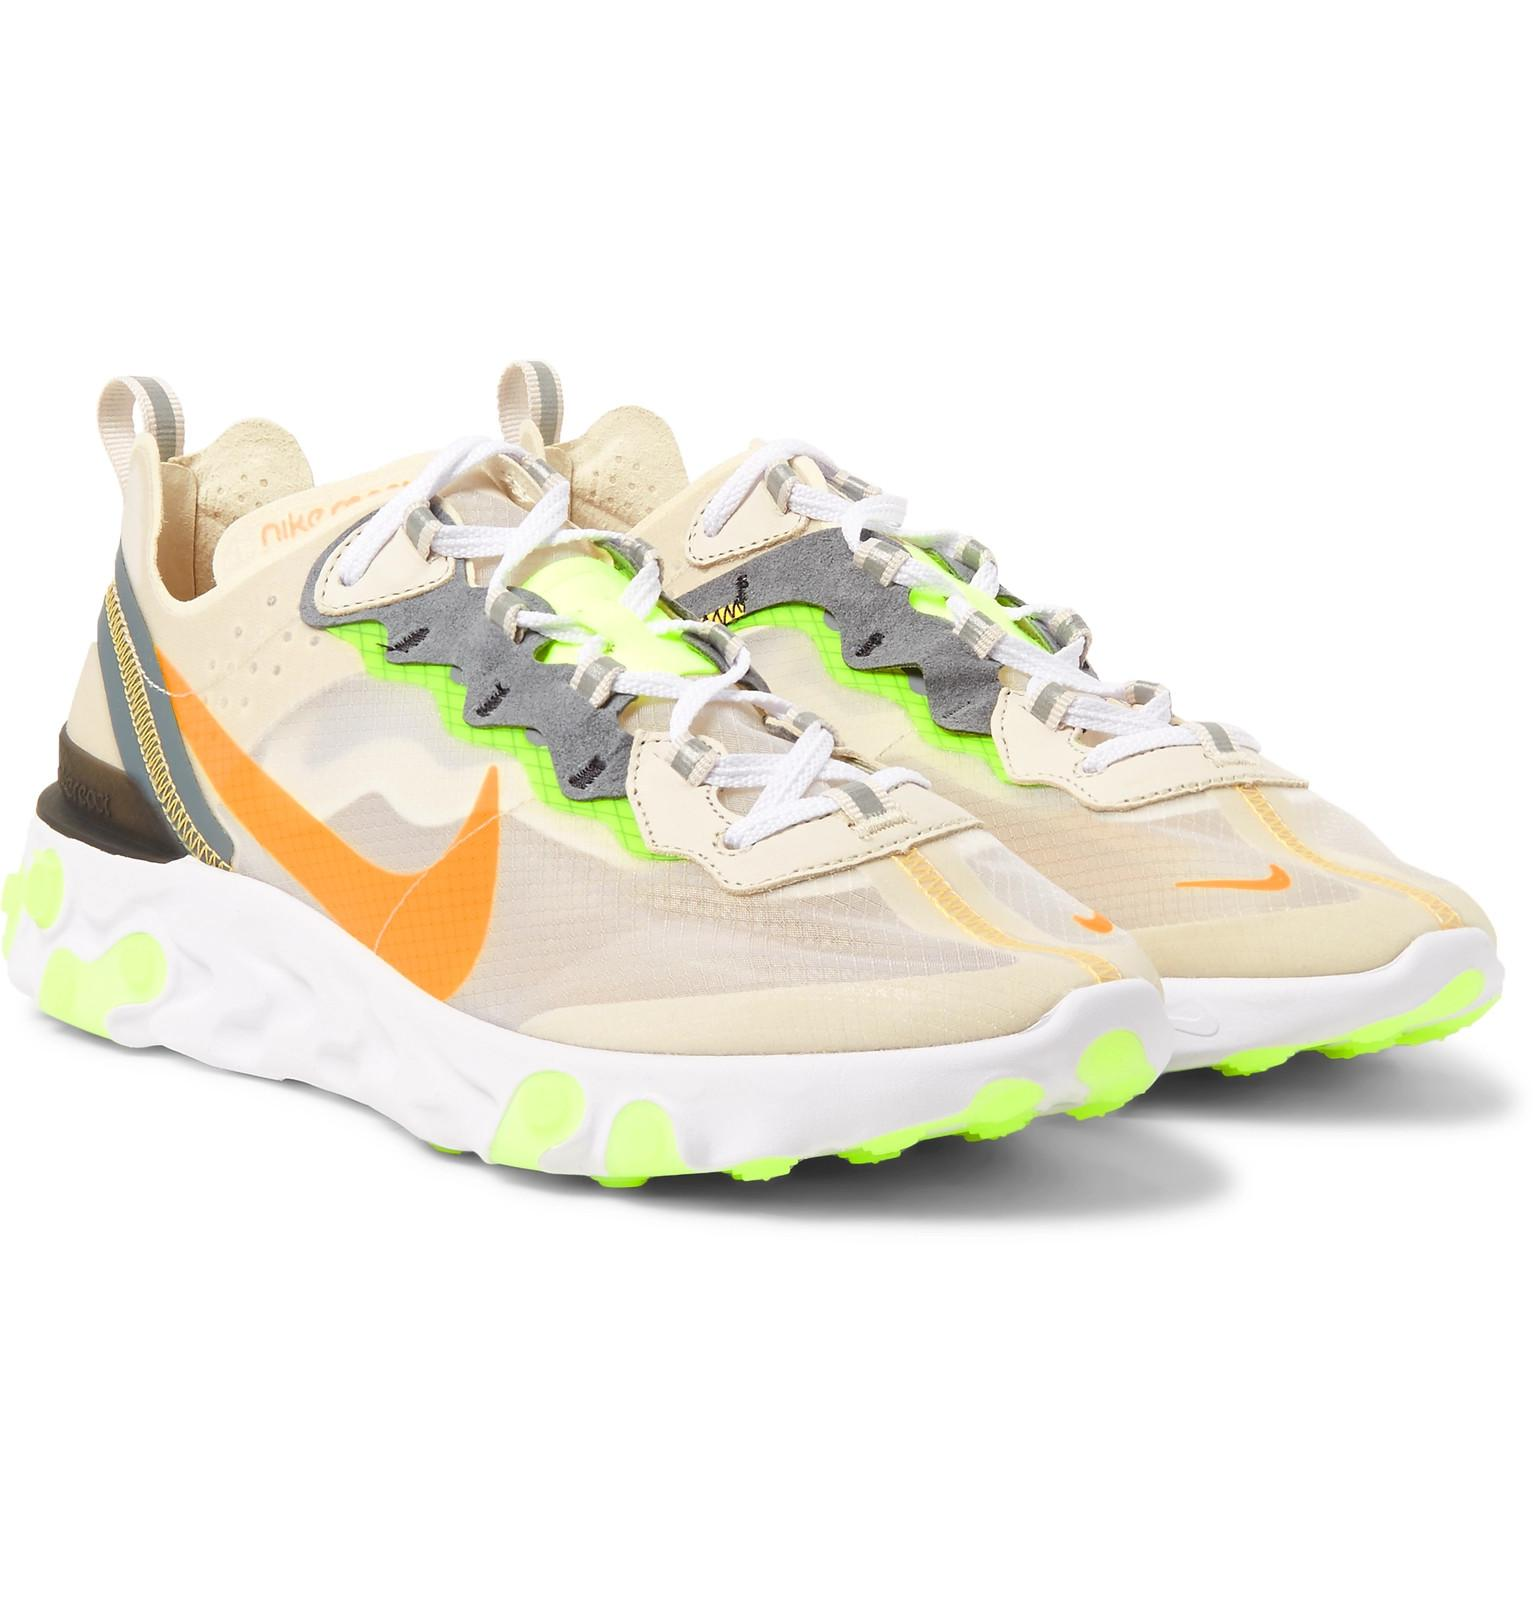 React Element 87 Ripstop, Leather And Suede Sneakers